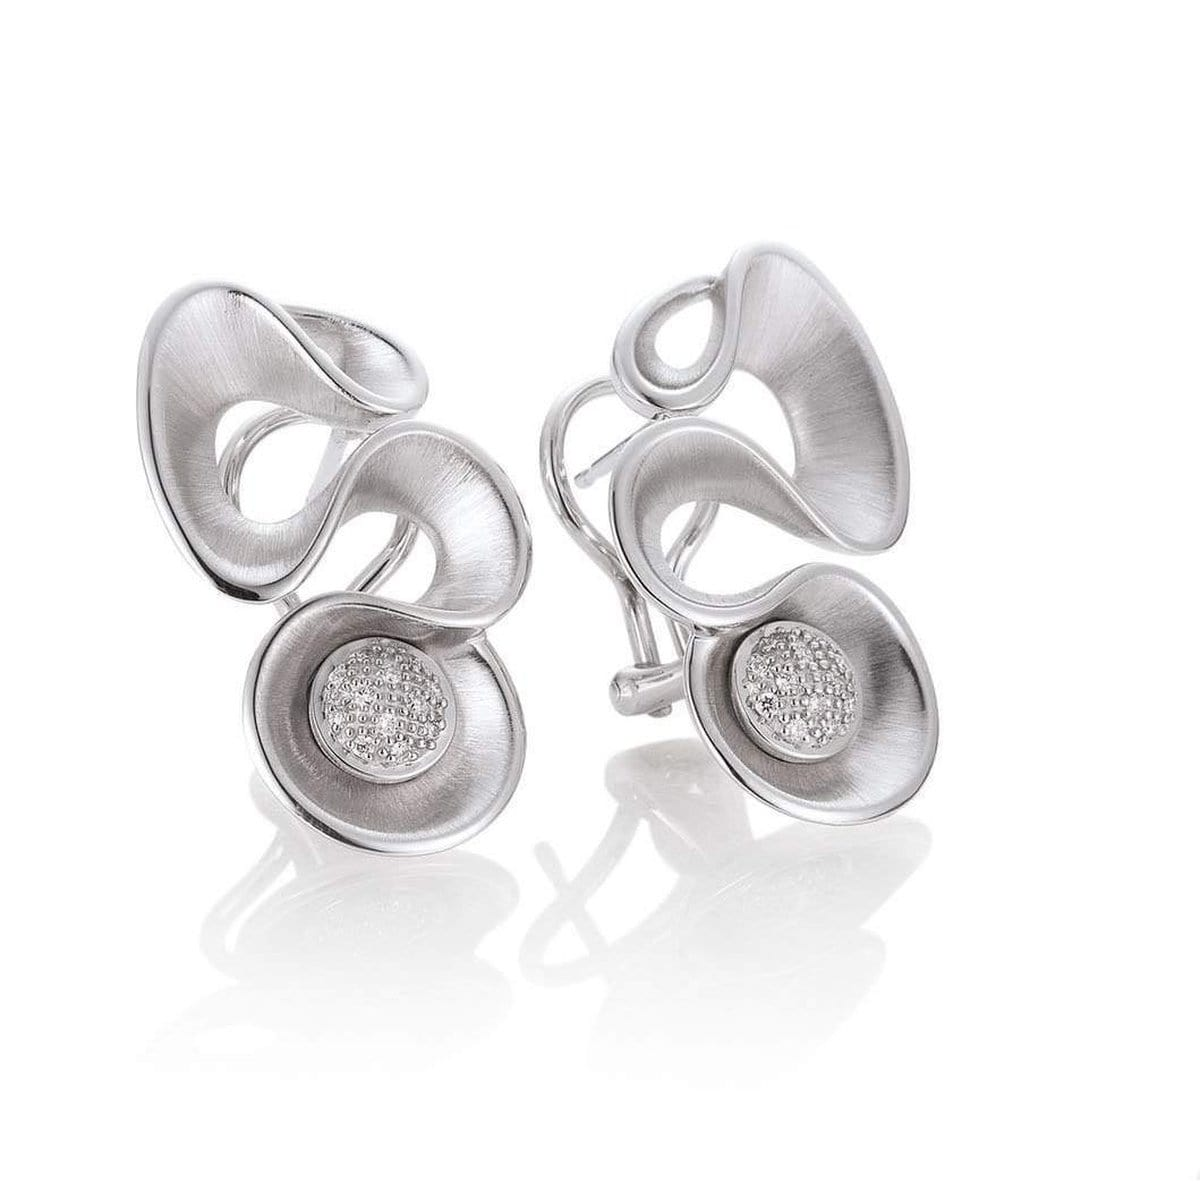 Rhodium Plated Sterling Silver Diamond Earrings - 01/05568-Breuning-Renee Taylor Gallery